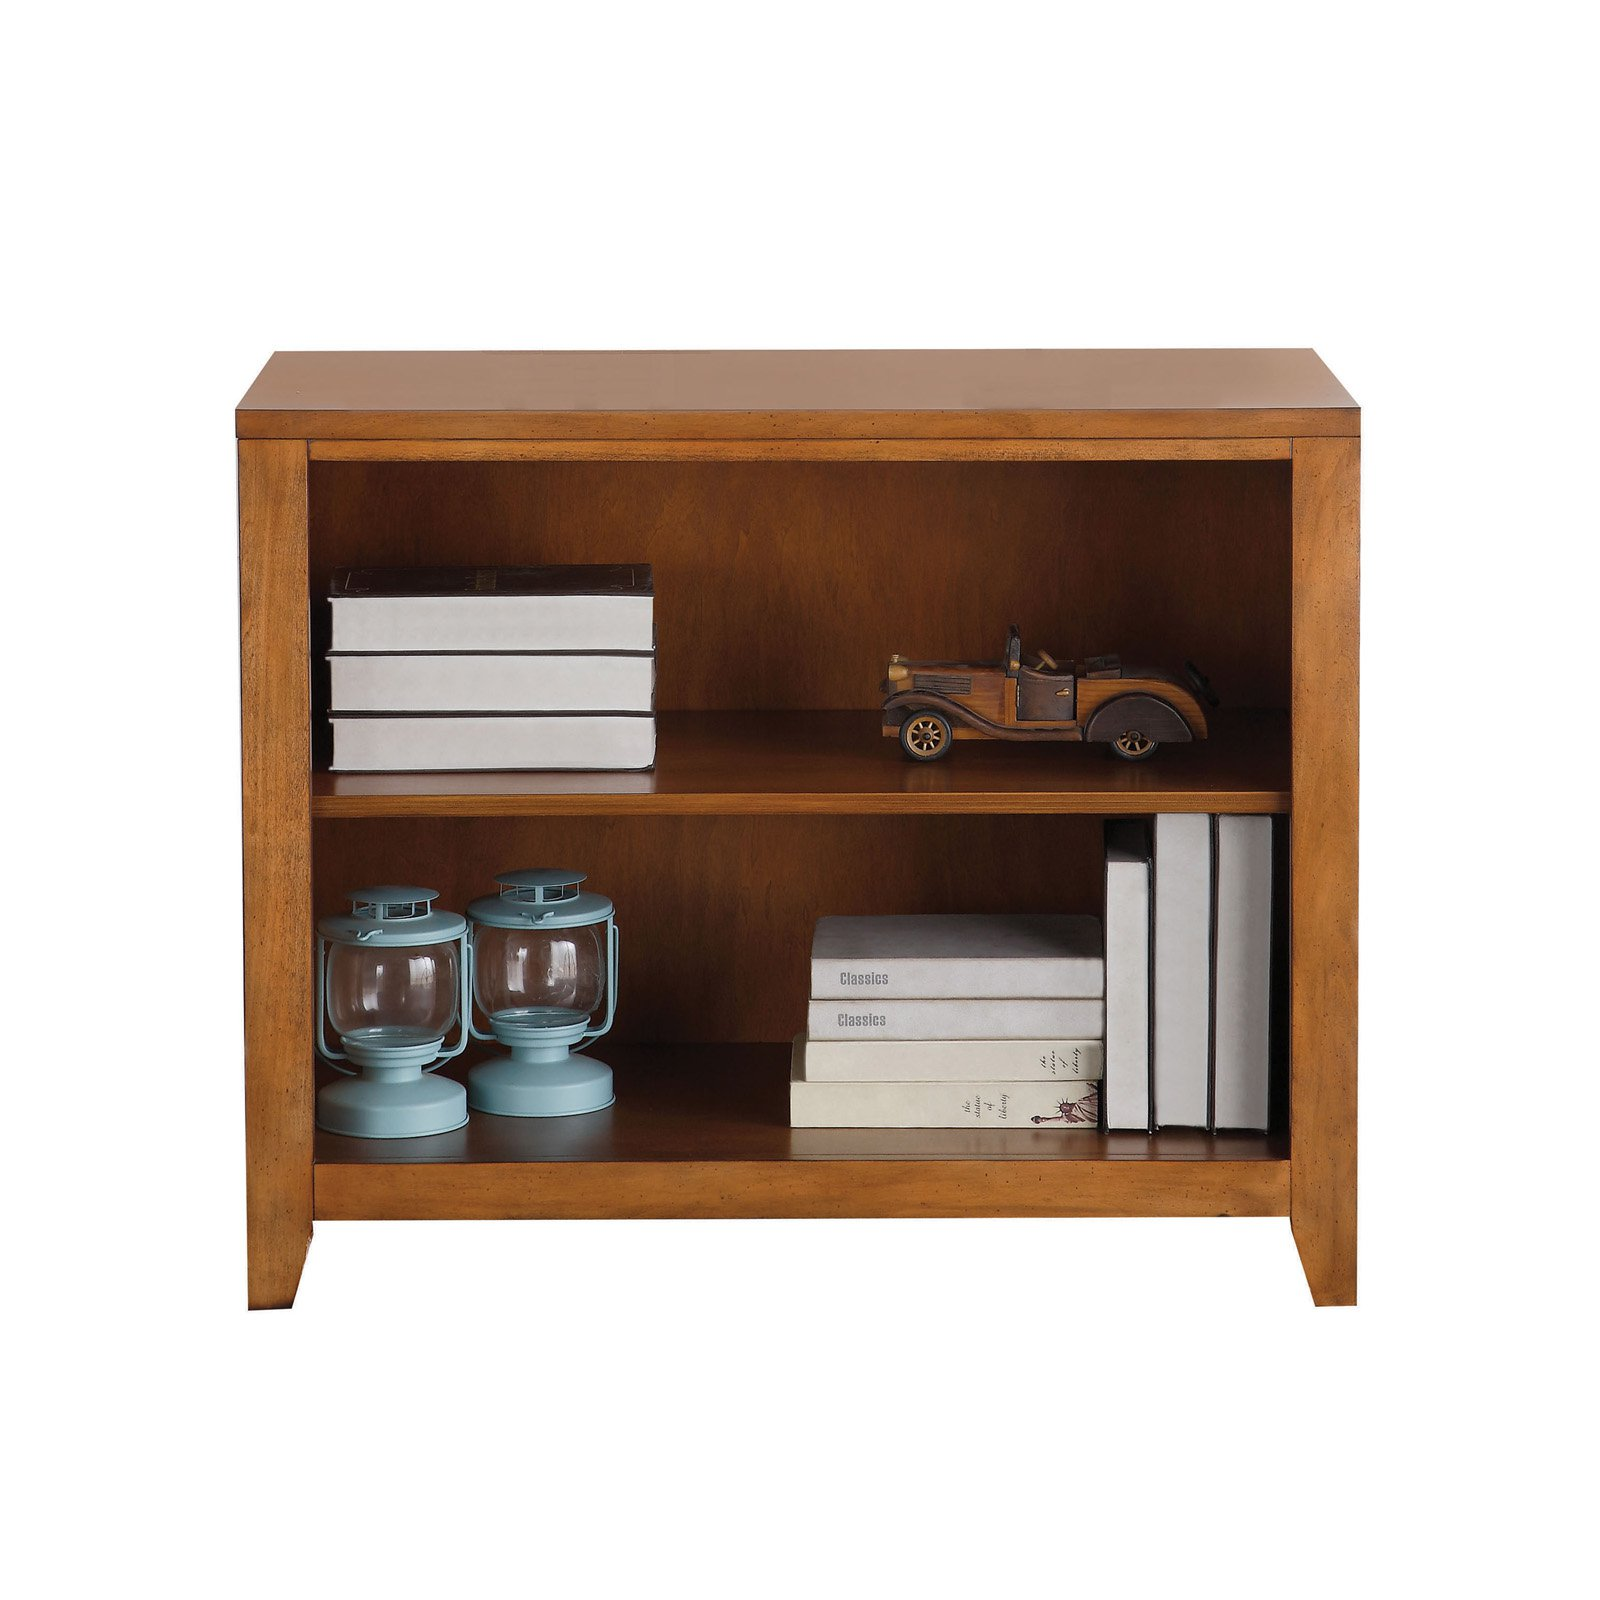 Acme Lacey Bookcase, Cherry Oak